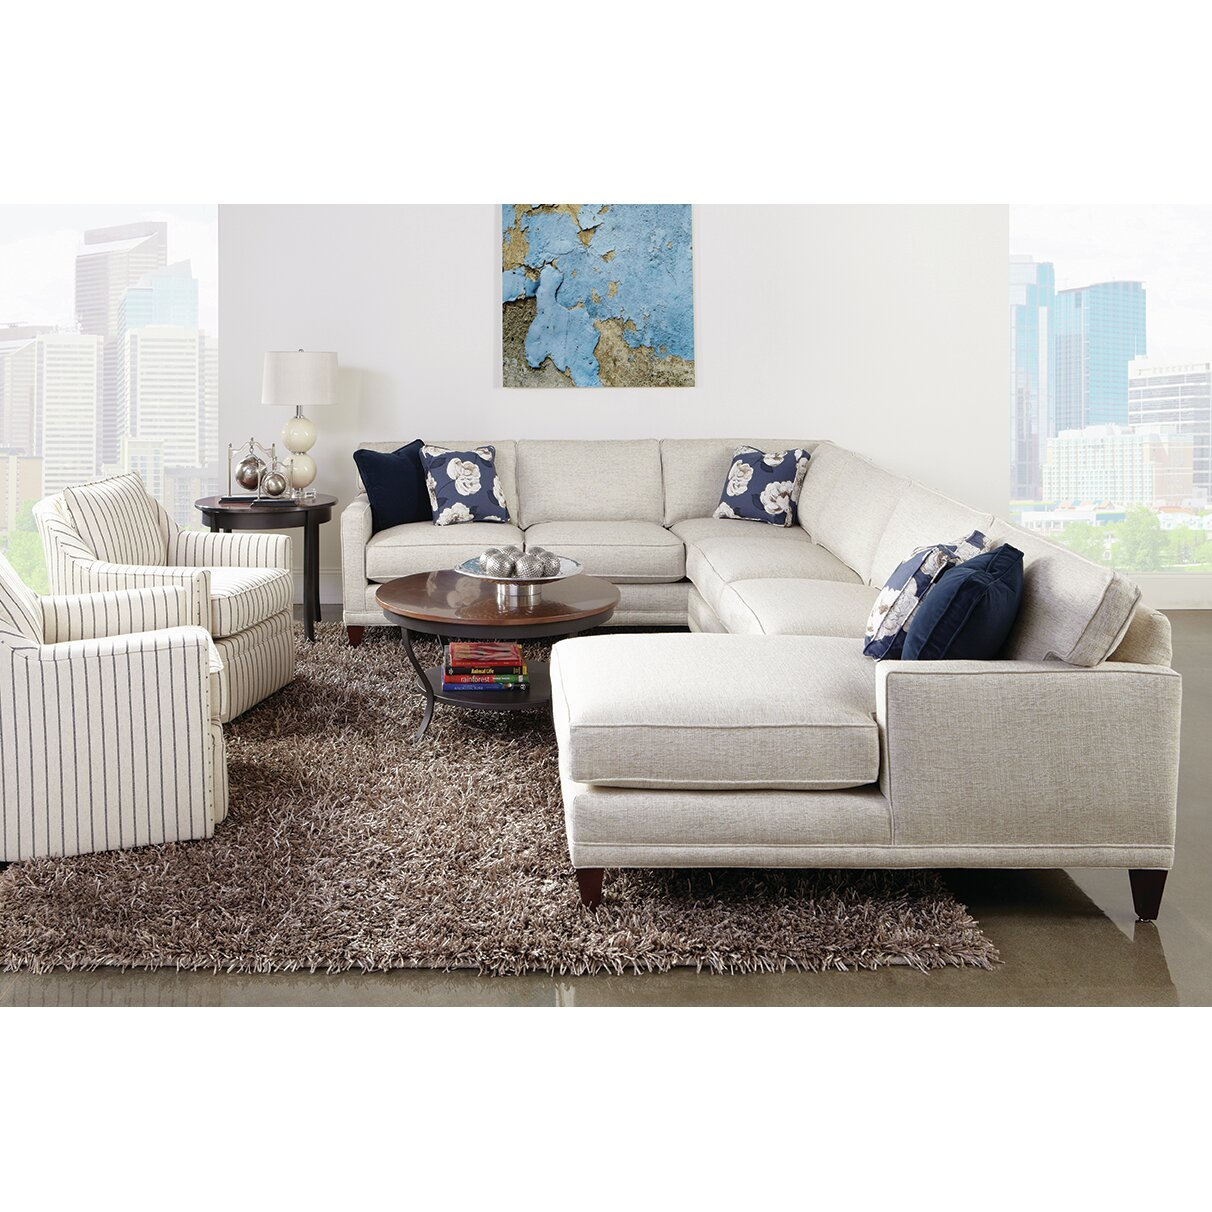 Rowe Furniture Townsend Sectional Reviews Wayfair